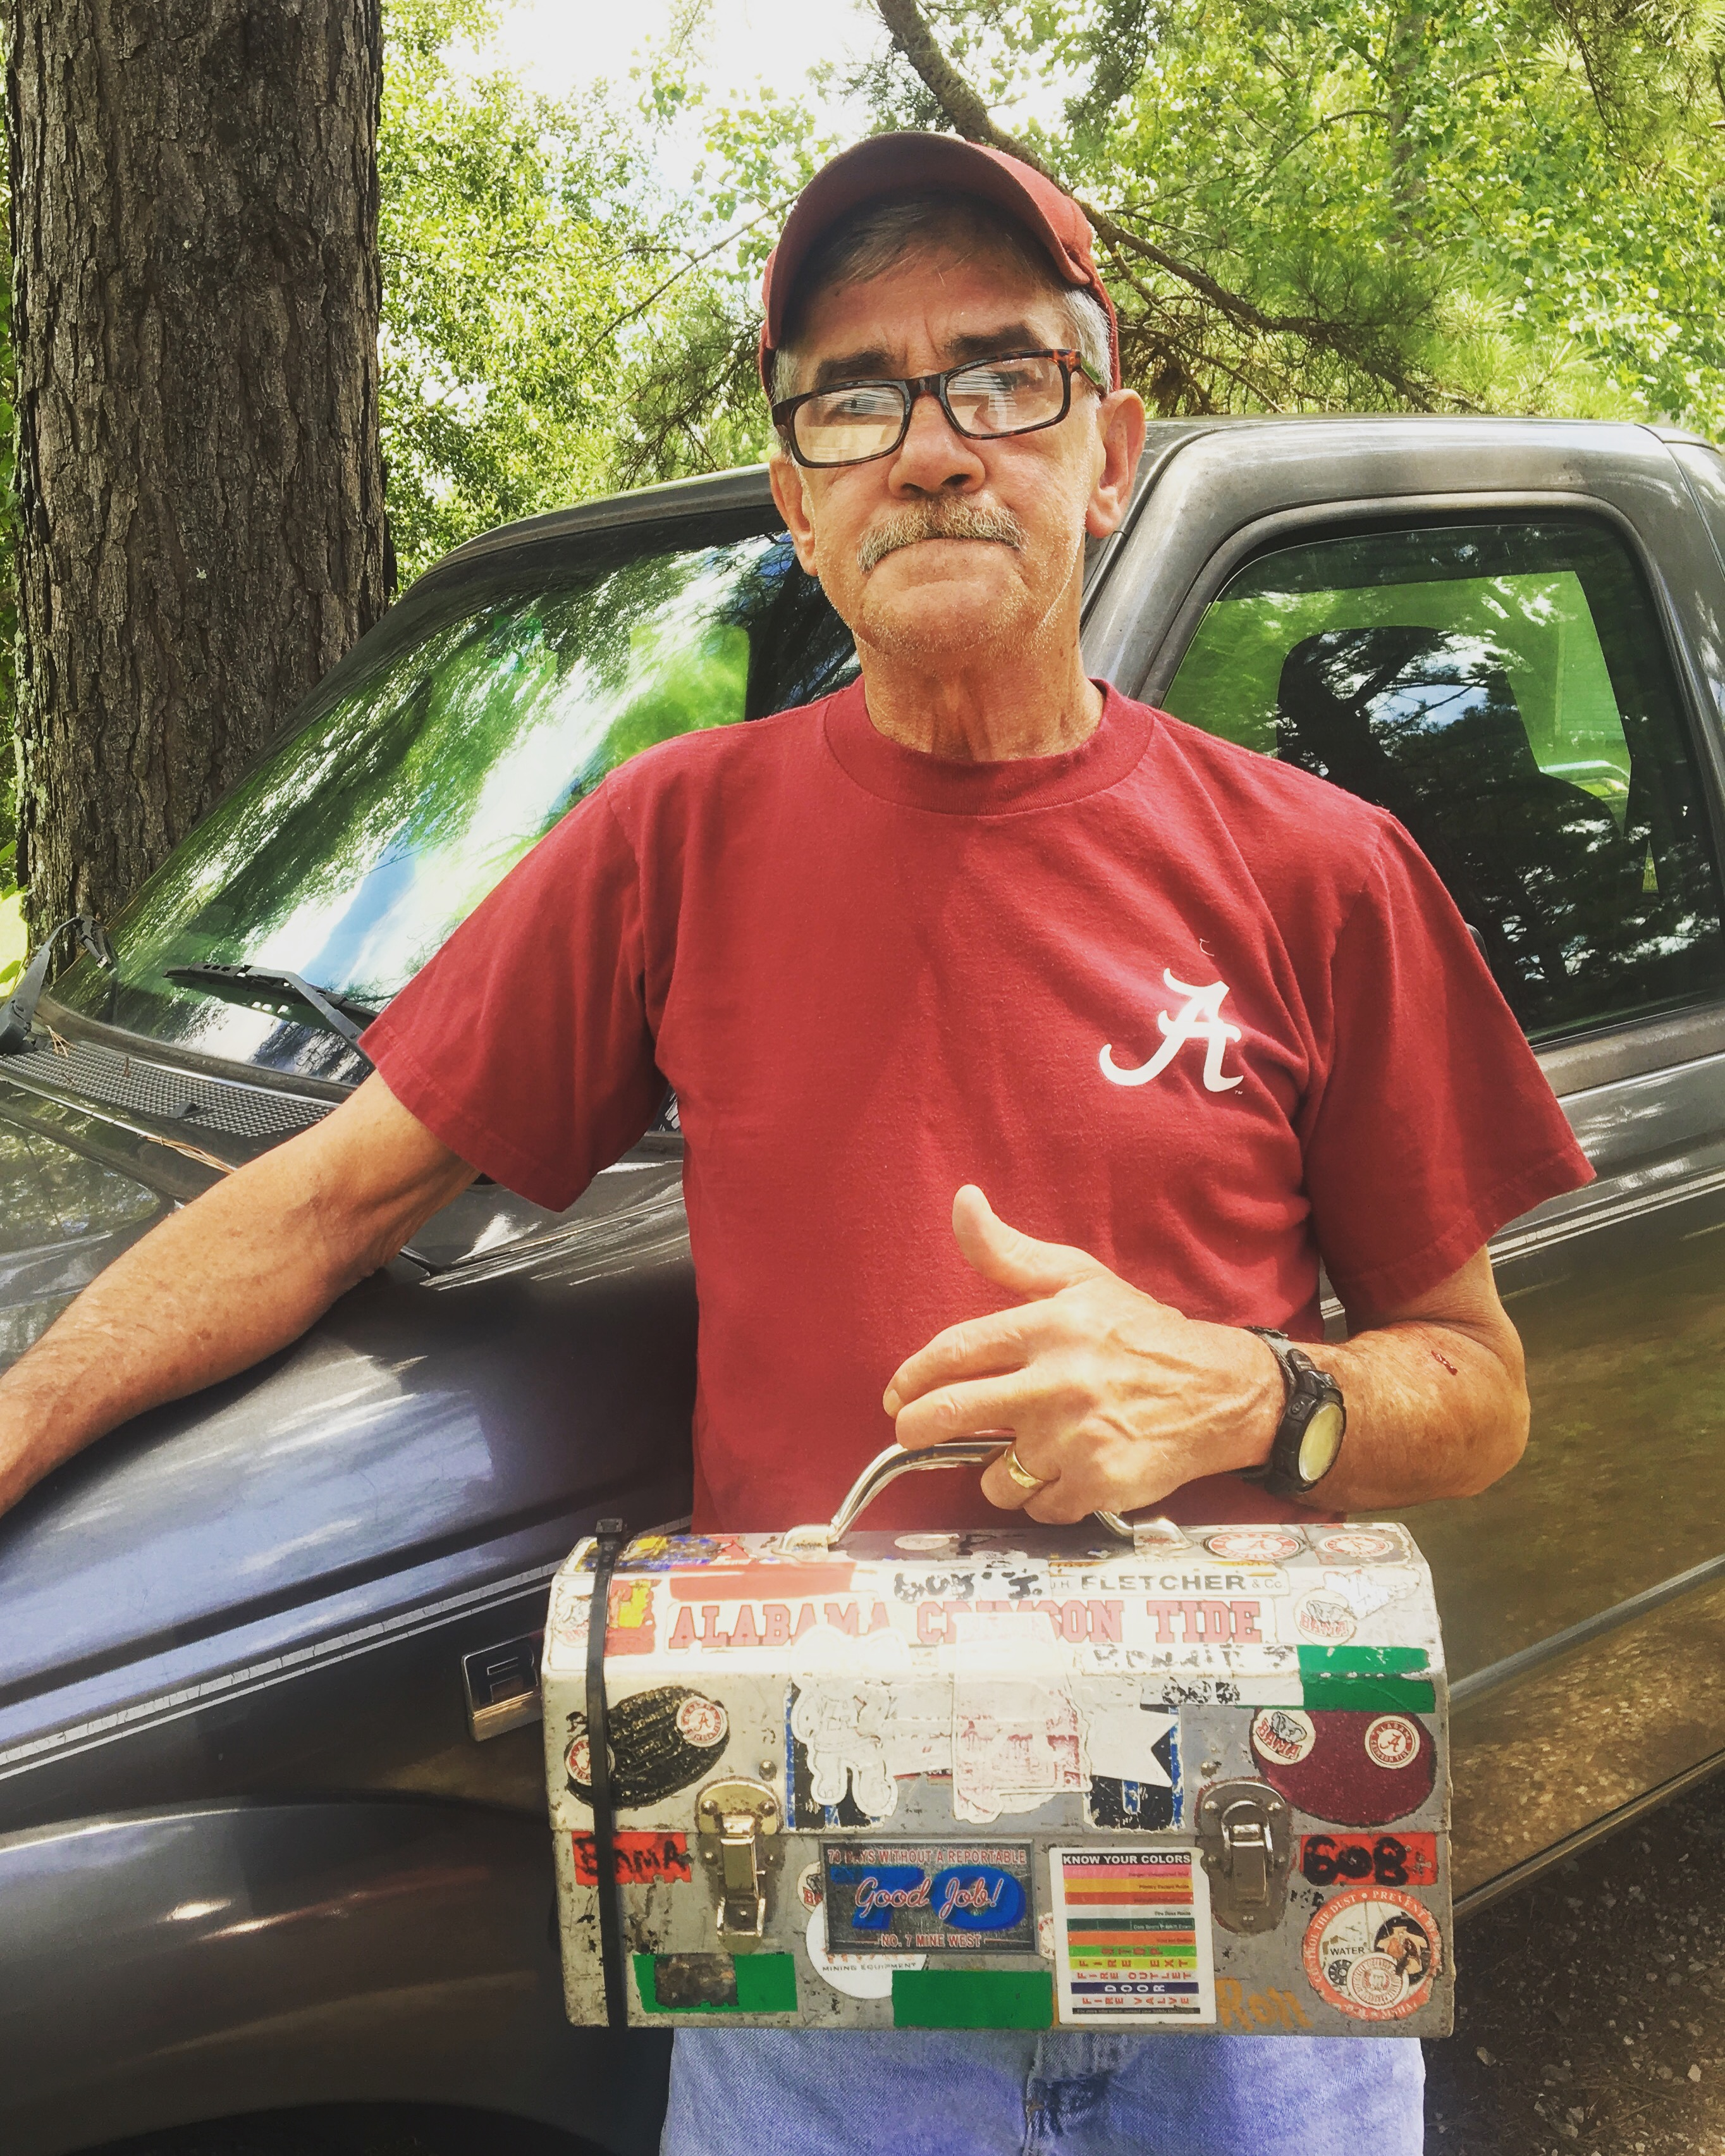 Caption: Coal miner Ronnie Johnson, with his lunchbox.